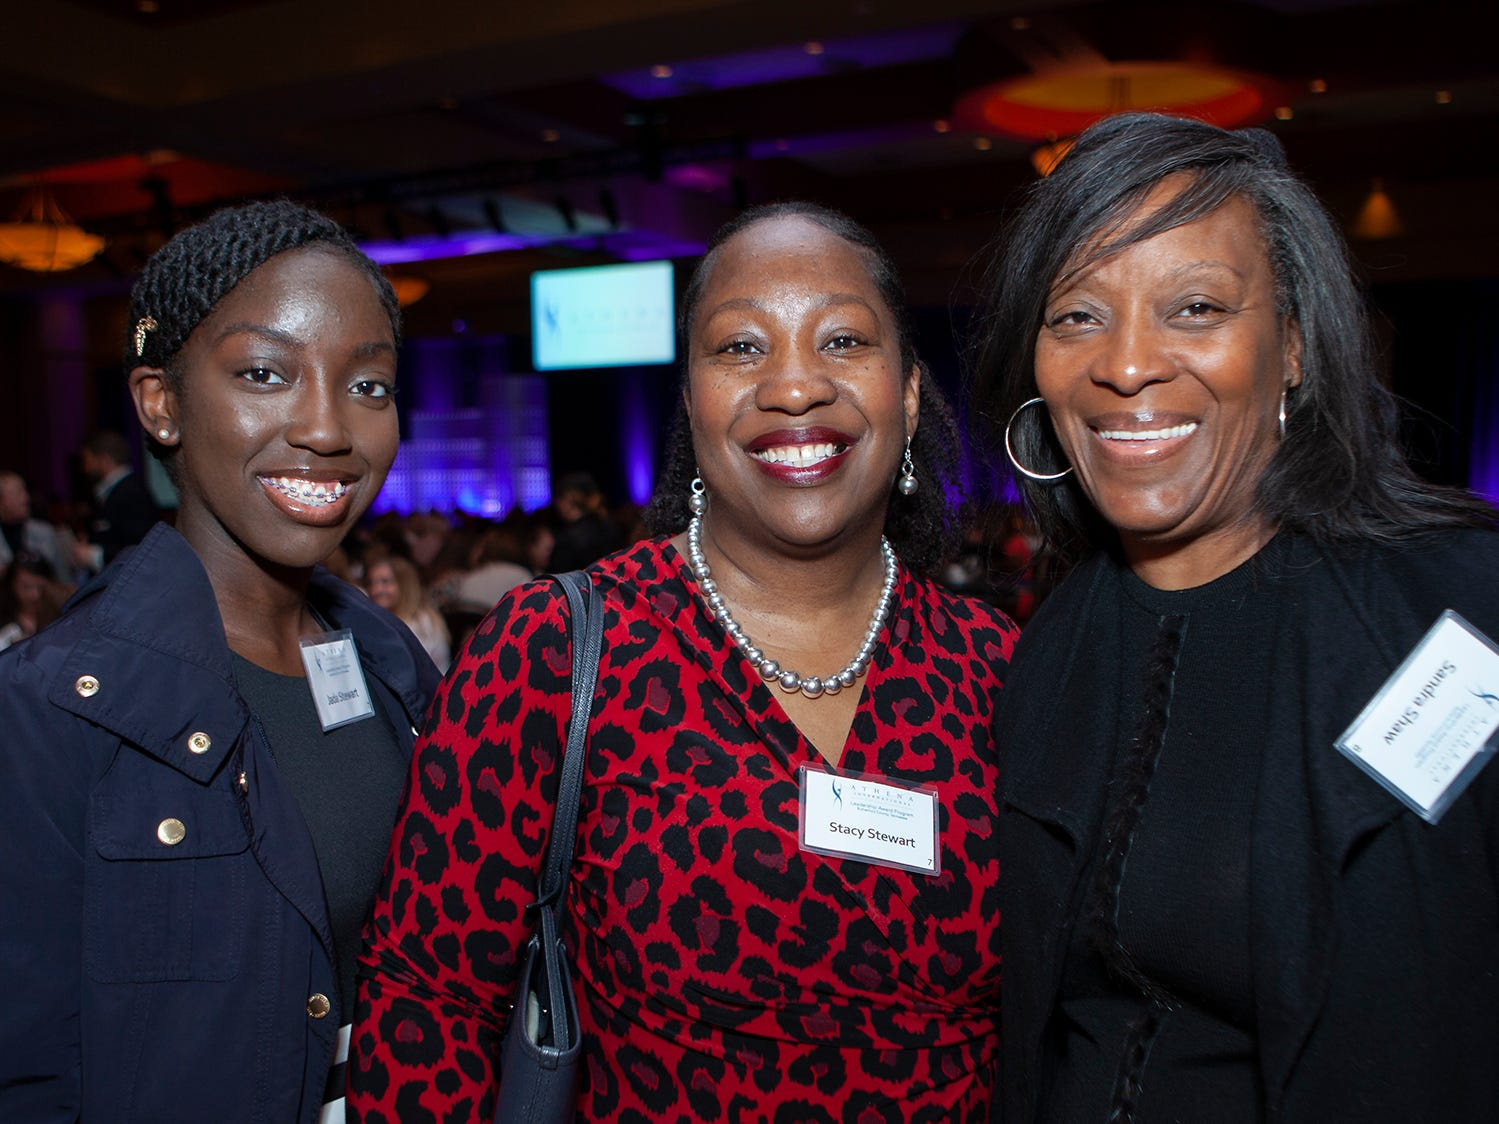 Jada Stewart, Stacy Stewart and Sandra Shaw were on hand for the annual ATHENA Leadership Awards, hosted by Rutherford Cable Friday, April 12, 2019 at Embassy Suites Murfreesboro.